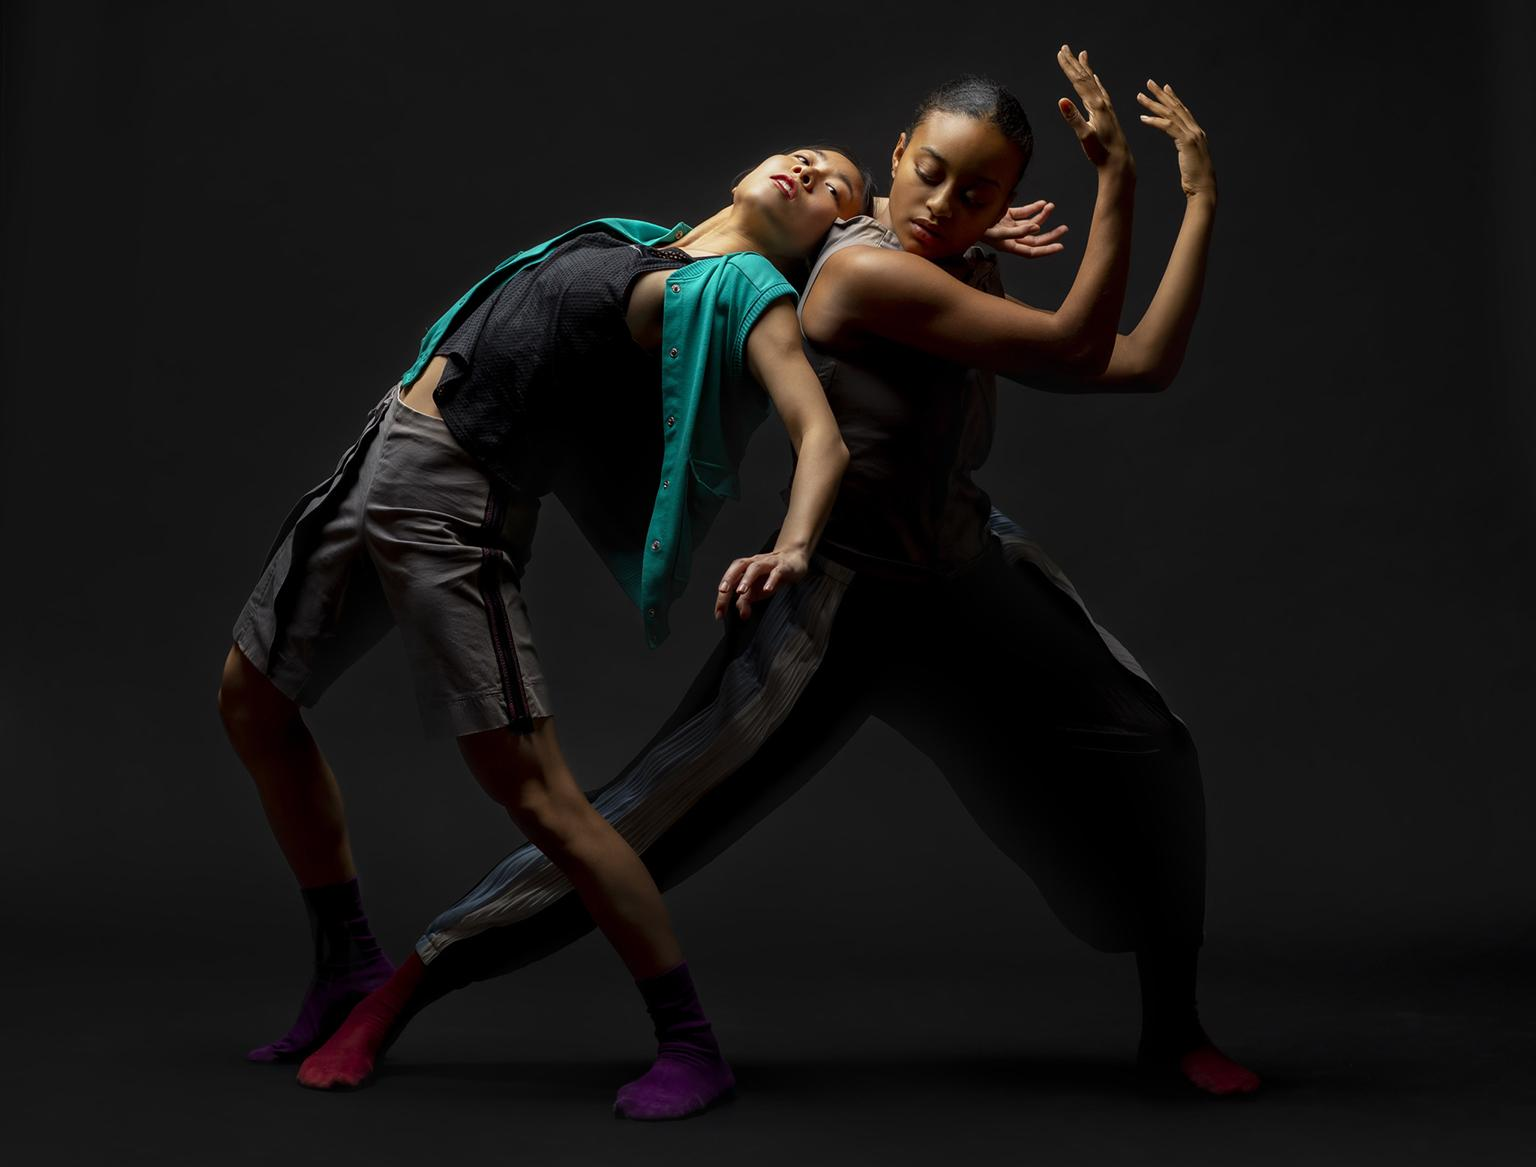 Hubbard Street dancers Connie Shiau and Alysia Johnson. Concept by Rena Butler. (Photo by Todd Rosenberg)